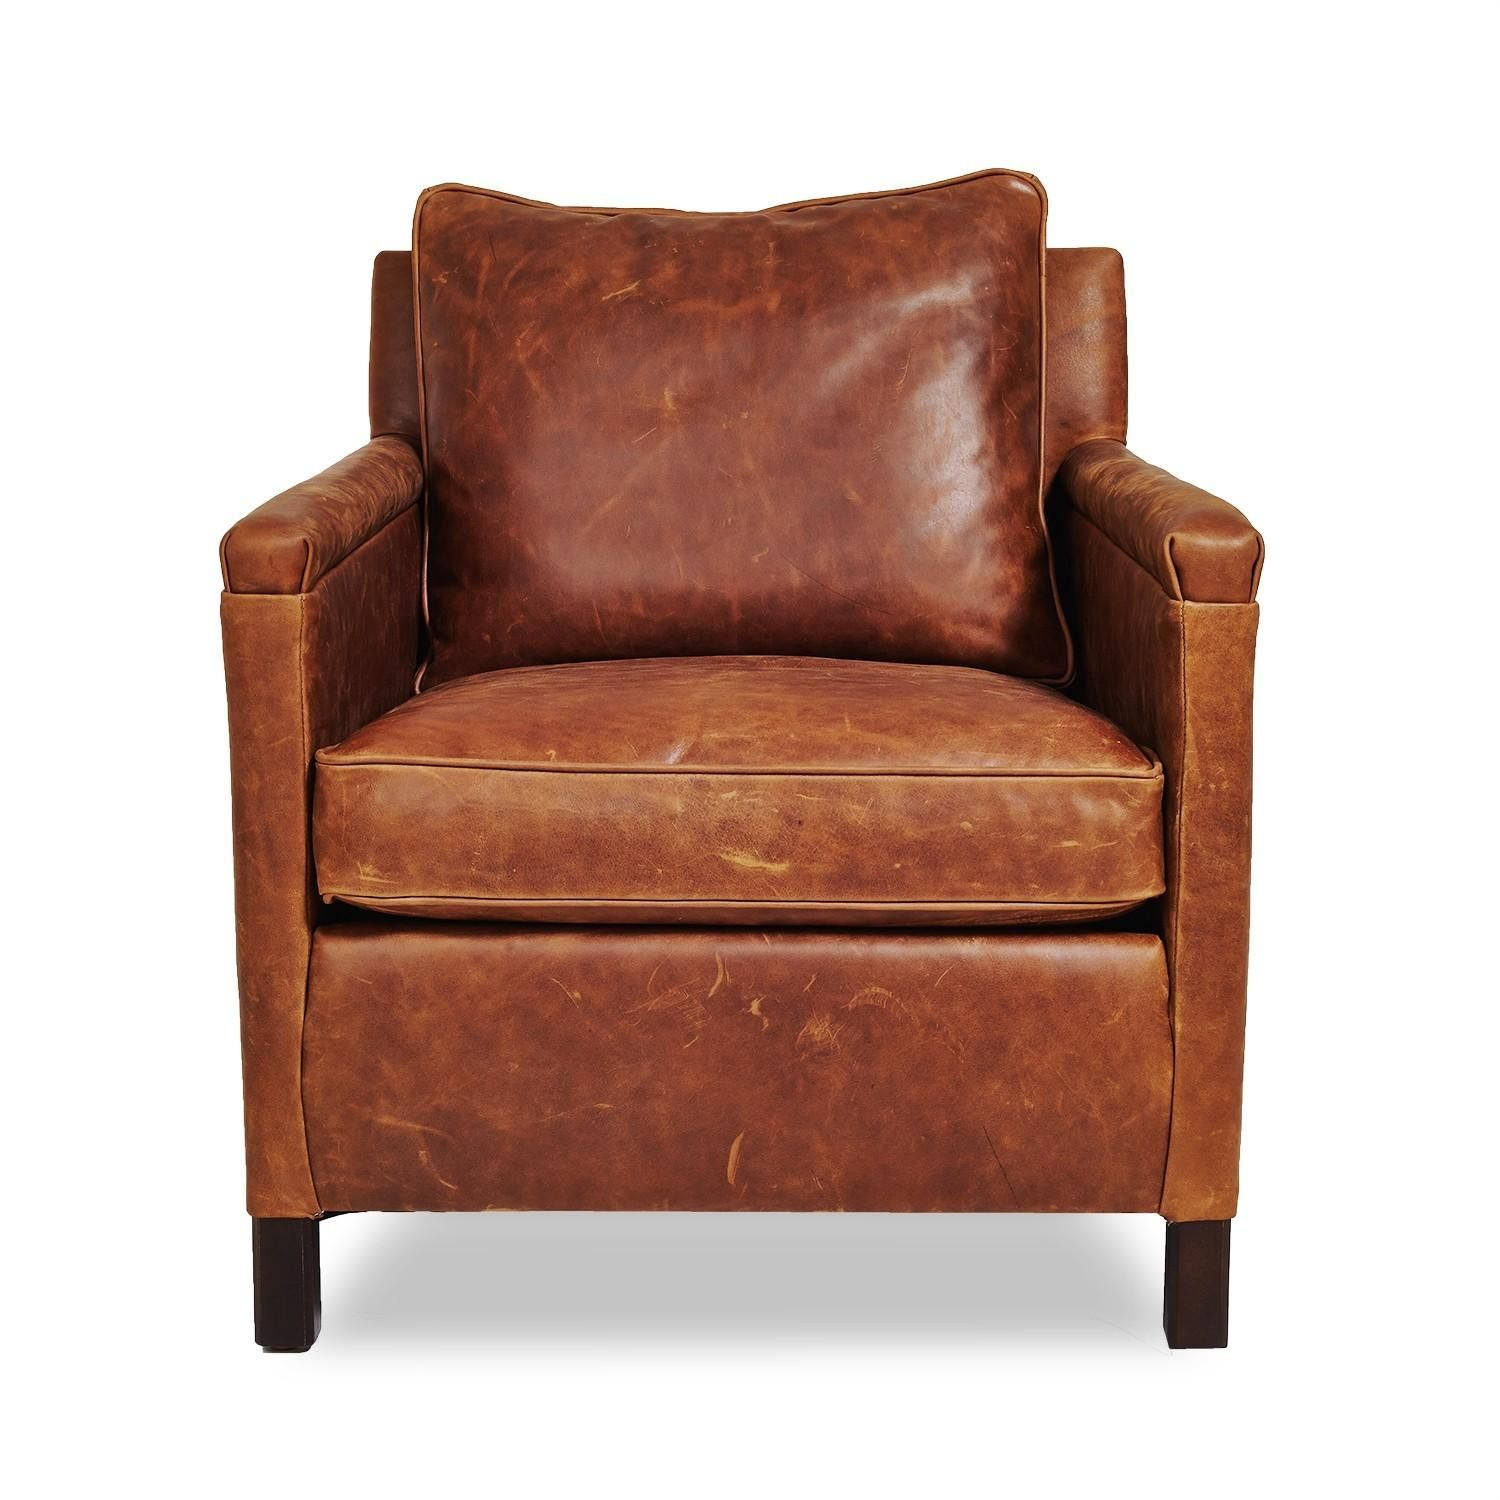 Strange Irving Place Heston Leather Chair Library Chairs In 2019 Ncnpc Chair Design For Home Ncnpcorg